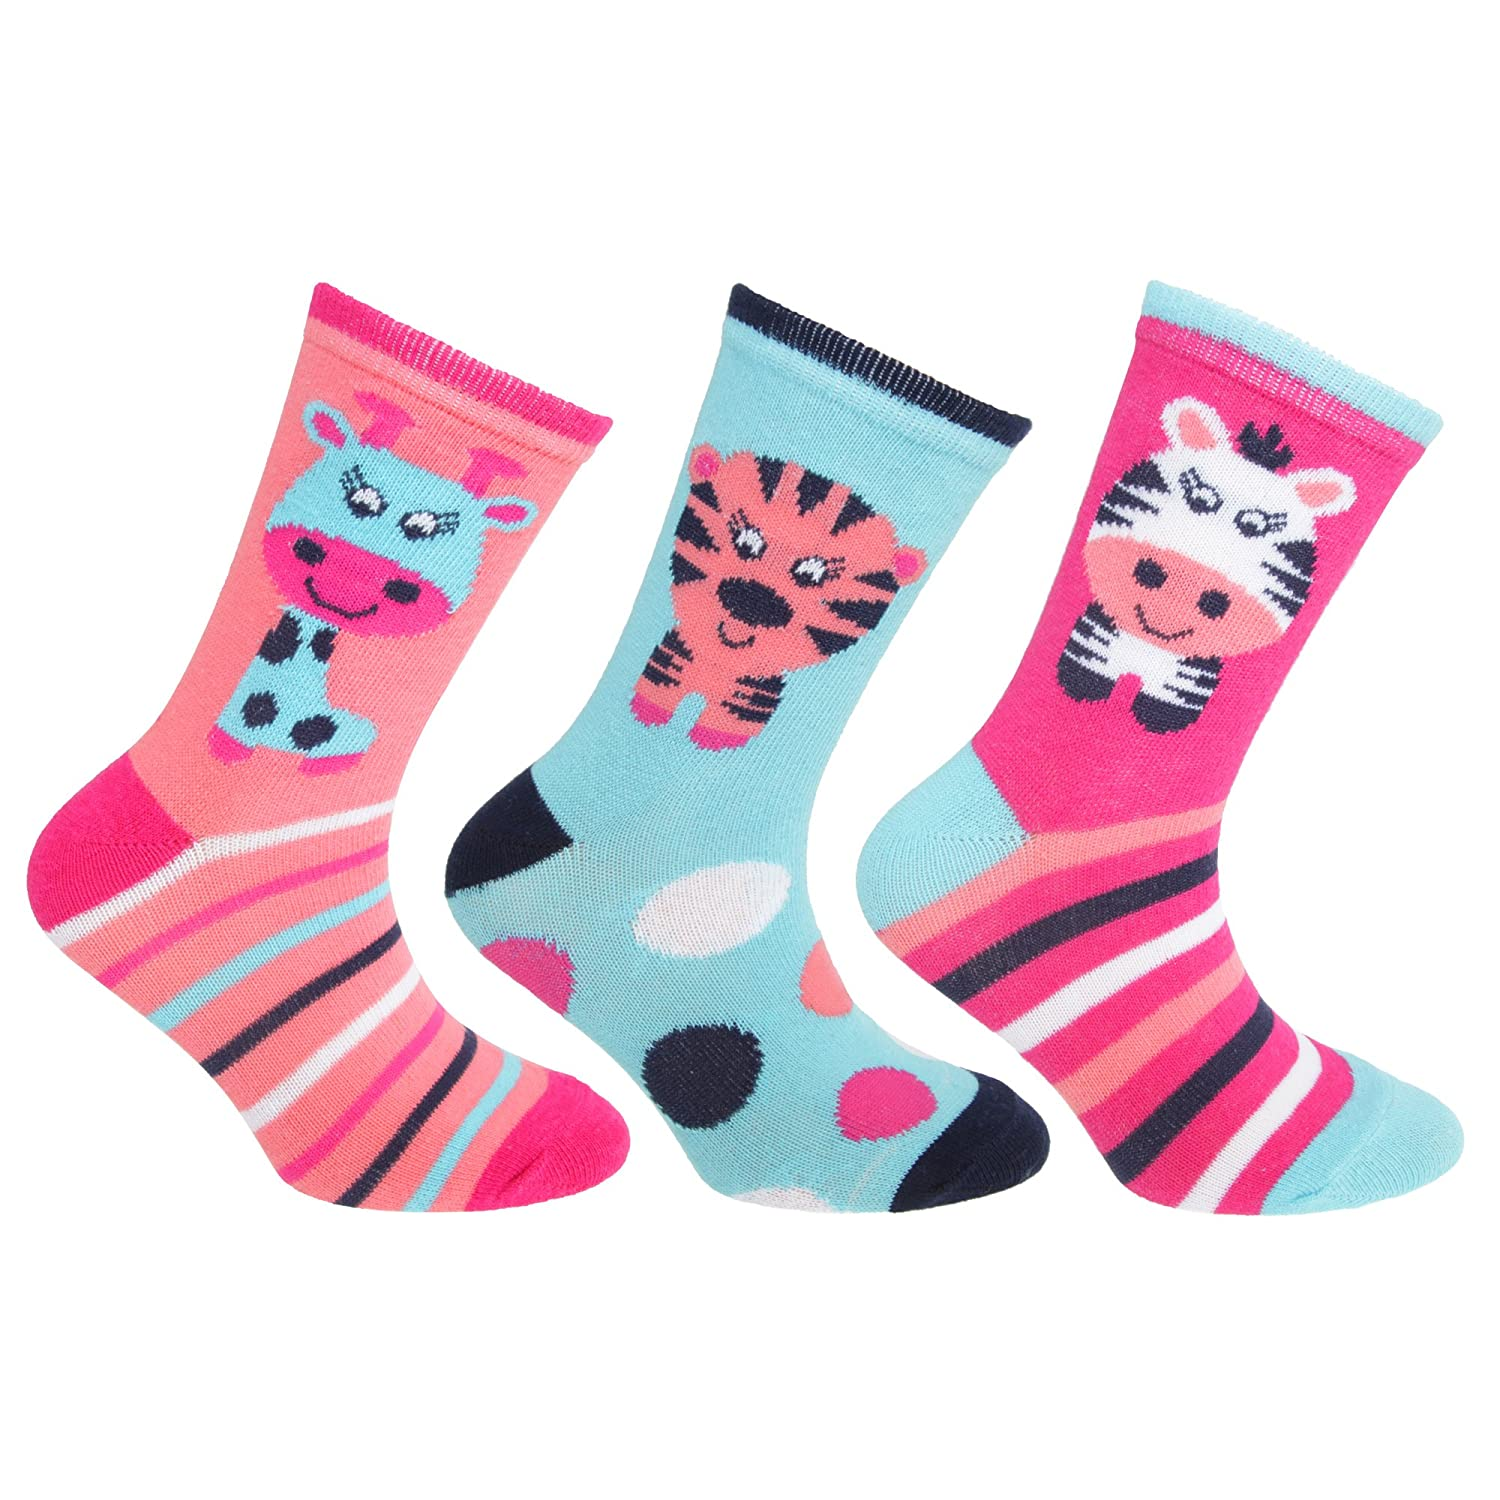 Childrens/Kids Cotton Rich Animal Socks (3 Pairs) Universal Textiles